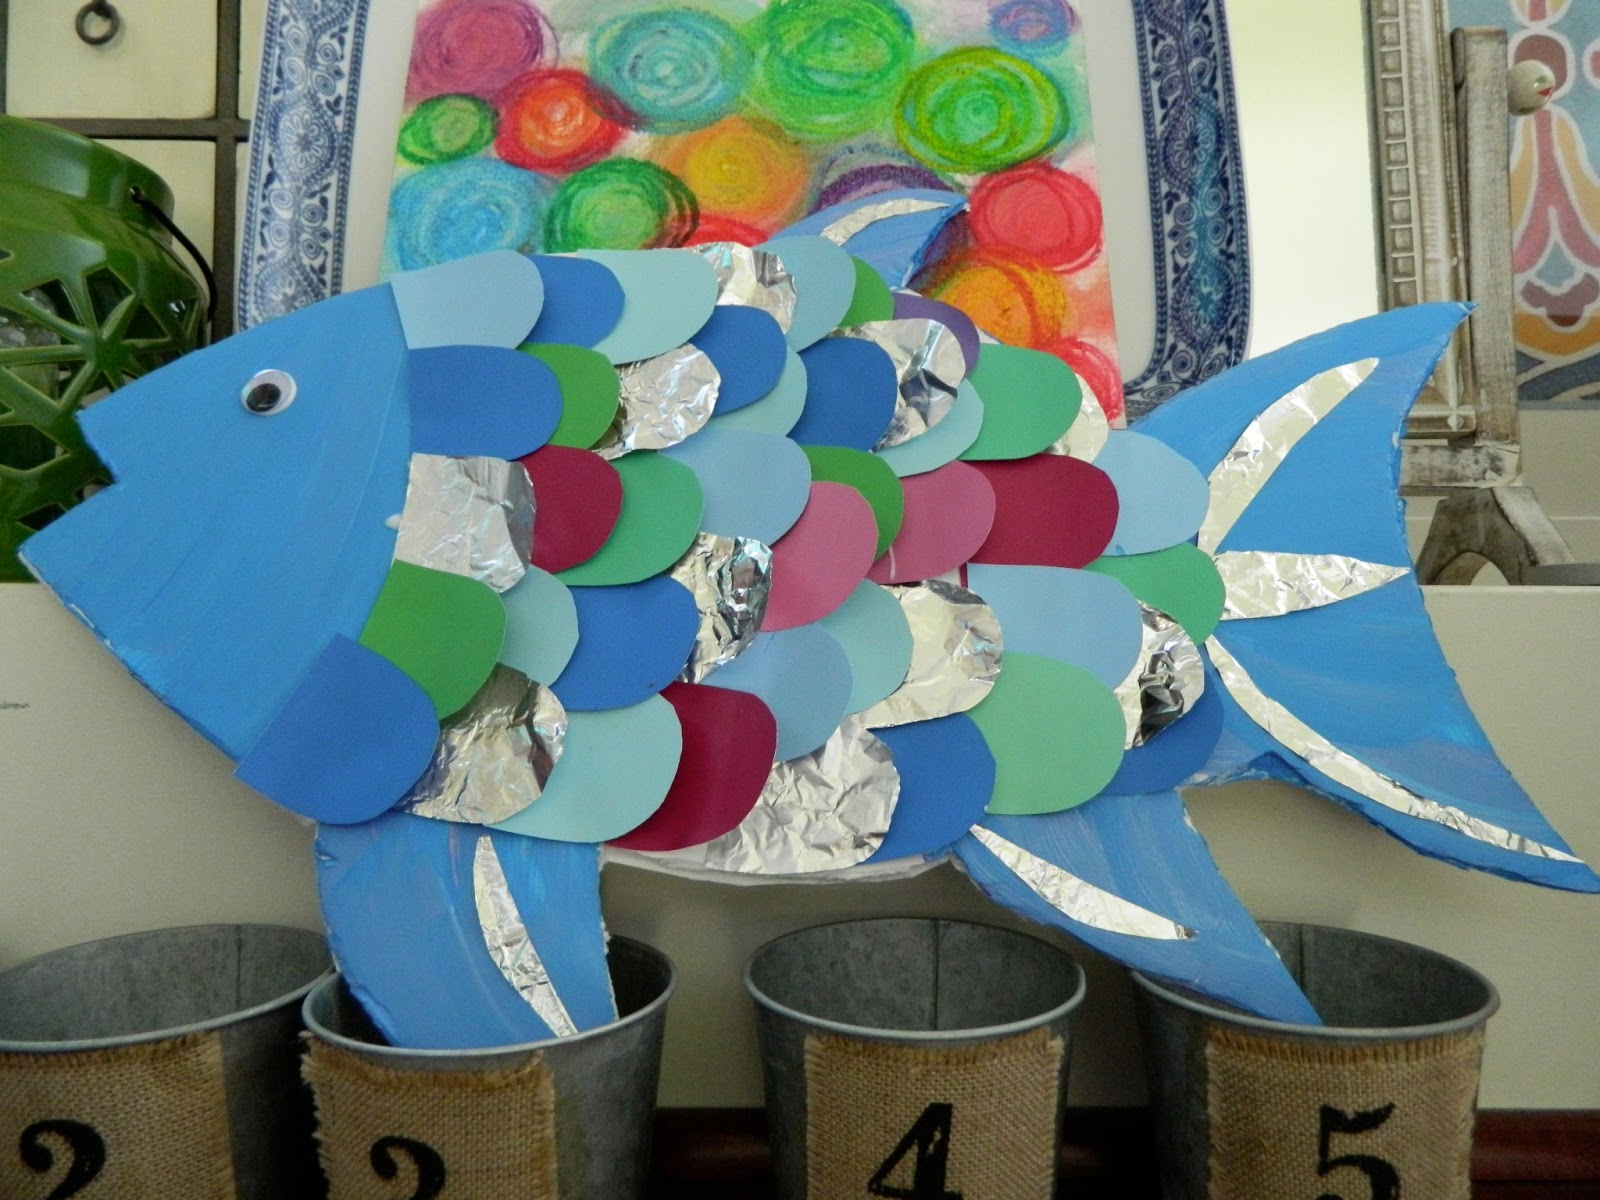 The Vintage Umbrella Rainbow Fish